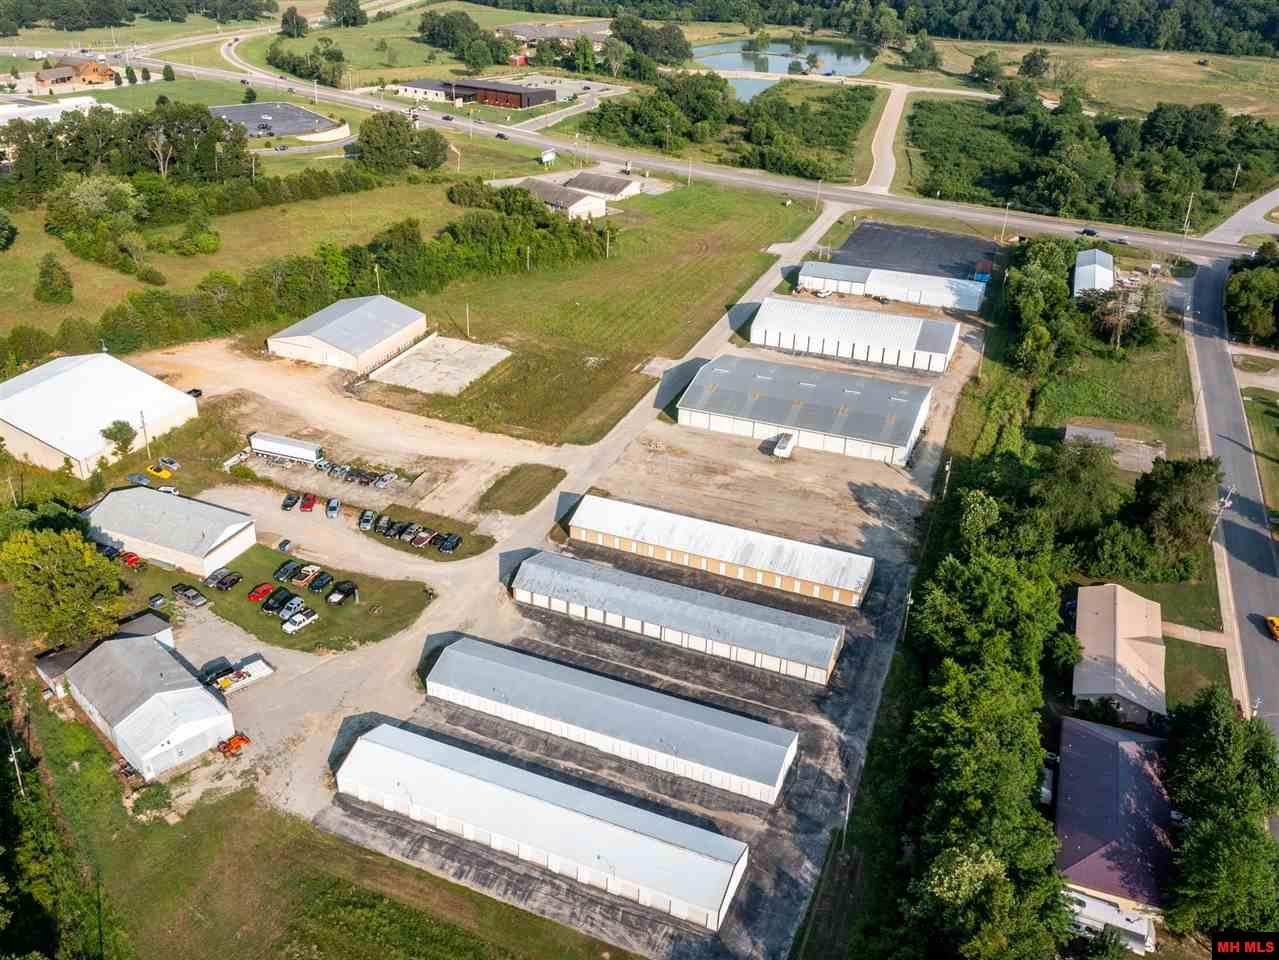 Commercial-Industrial for sale – 123  INDUSTRIAL PARK   Mountain Home, AR